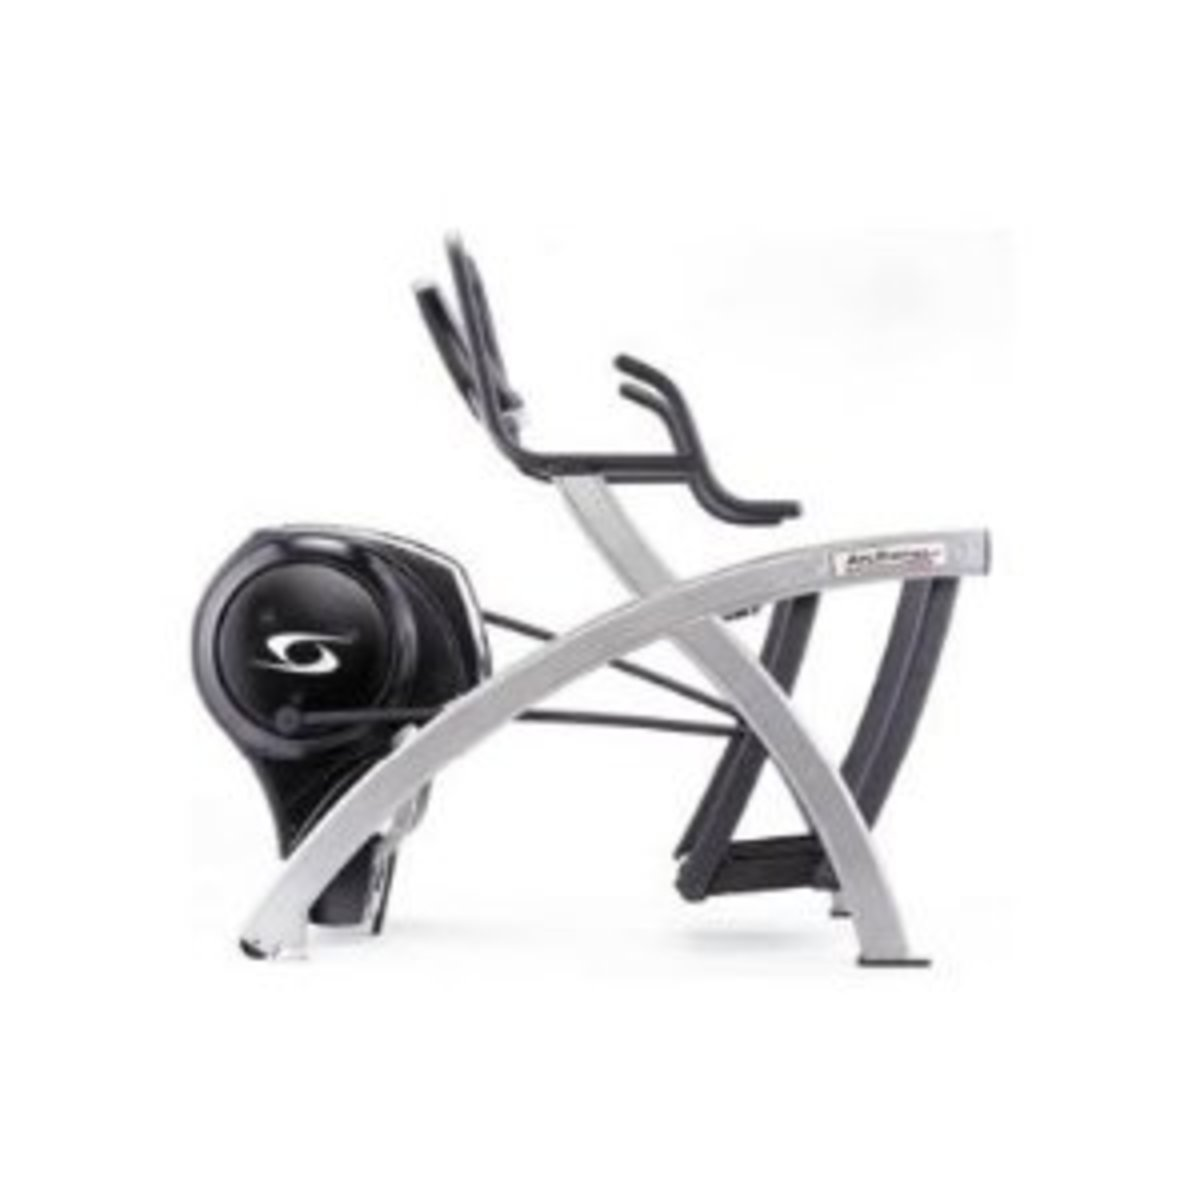 Cybex Arc Trainer 600a - Remanufactured w/warranty from $2995